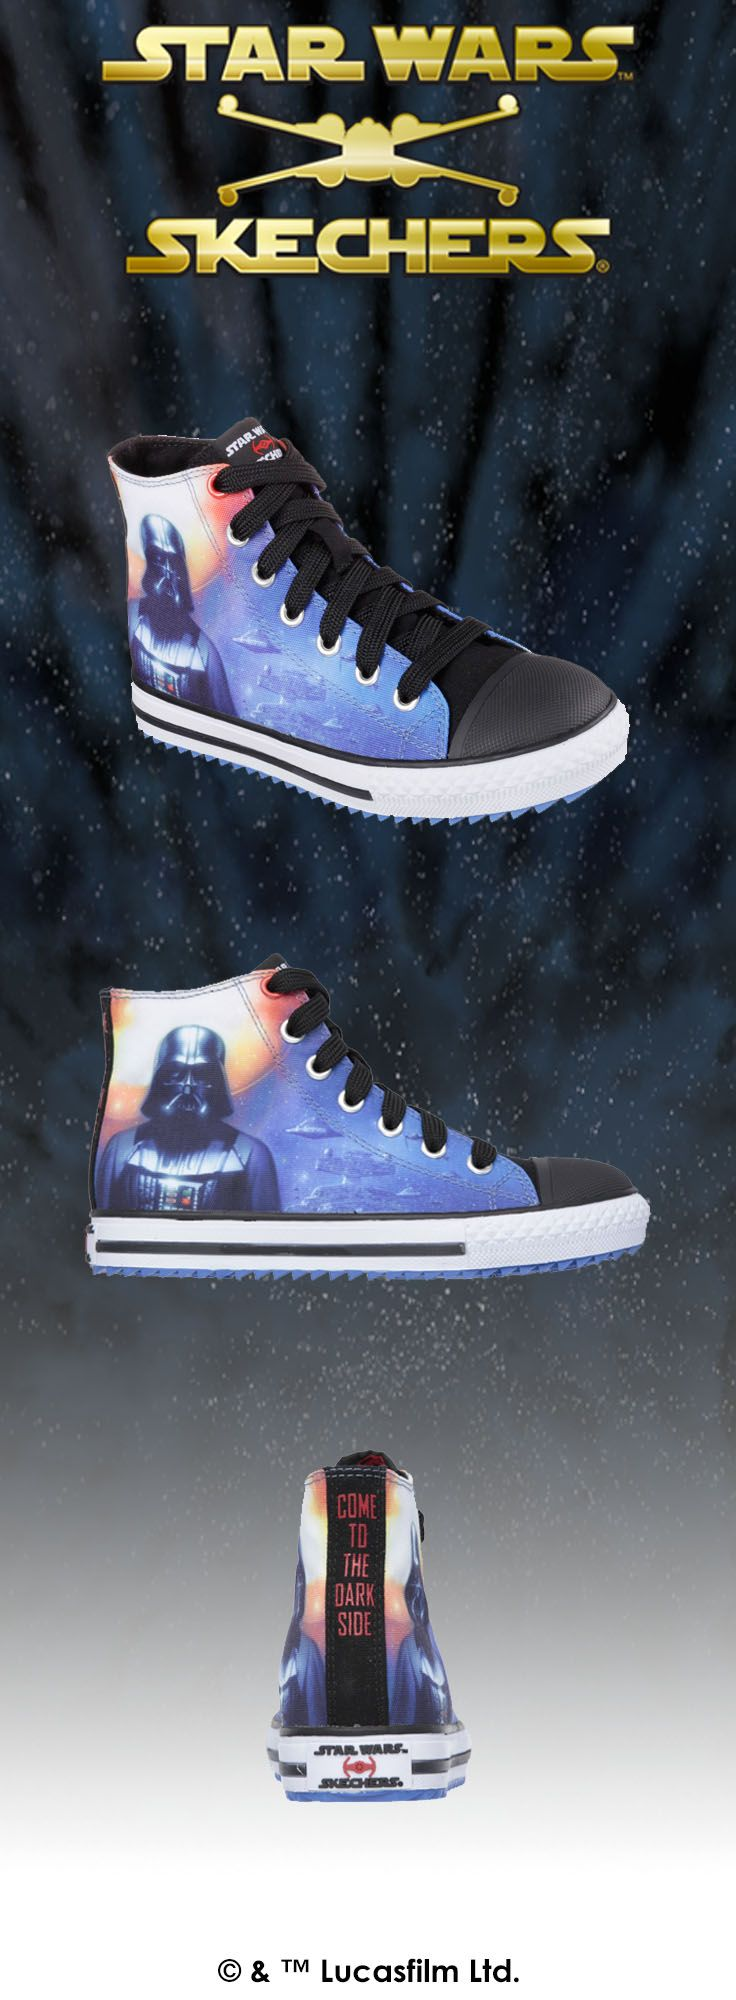 Come to the dark side with Darth Vader™ in cool high top Star Wars™ Skechers kicks. | http://spr.ly/6009BuHkx